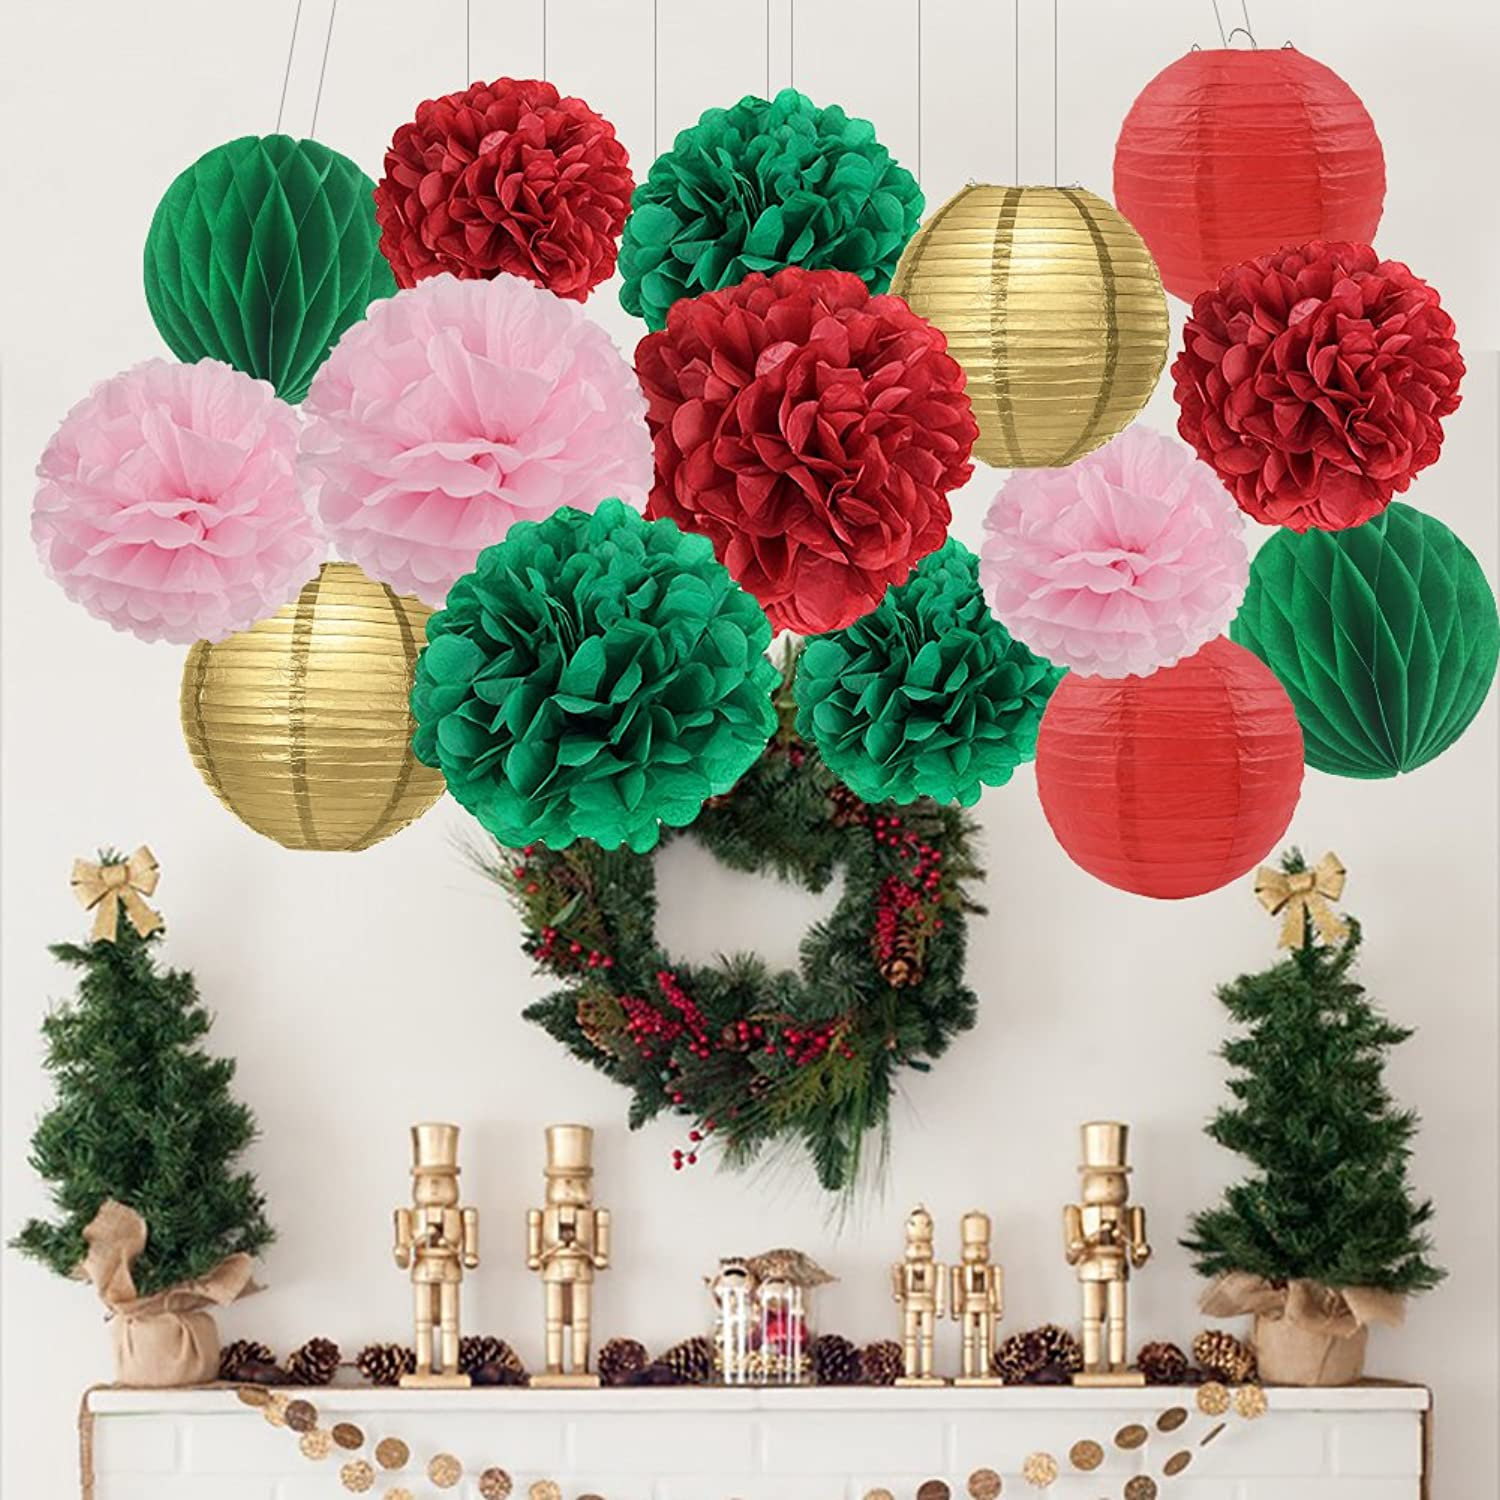 Furuix birthday decorations party decorations 15 points wedding decoration paper pompom lanterns Paper Flower honeycomb ball Red Green gold Pink